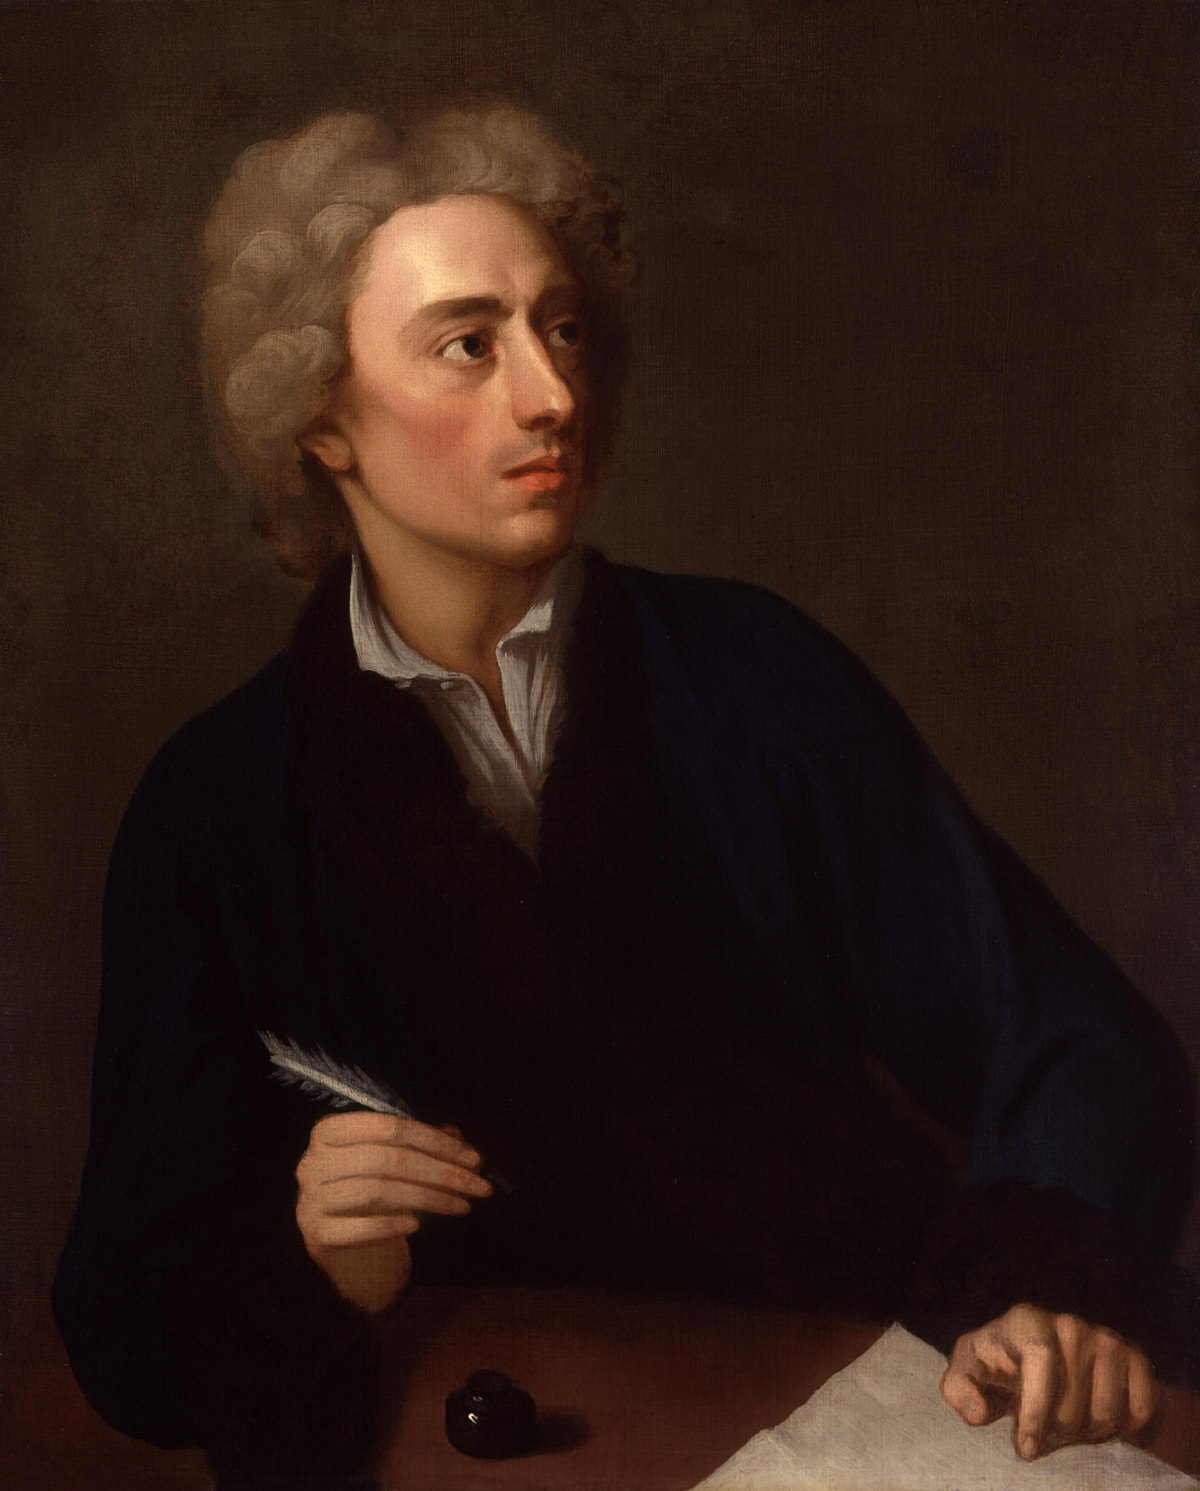 an essay on man moral essays and satires by alexander pope Essay on man, by alexander pope an essay on man moral essays and satires introduction pope's poems an essay on man to h st john lord bolingbroke.